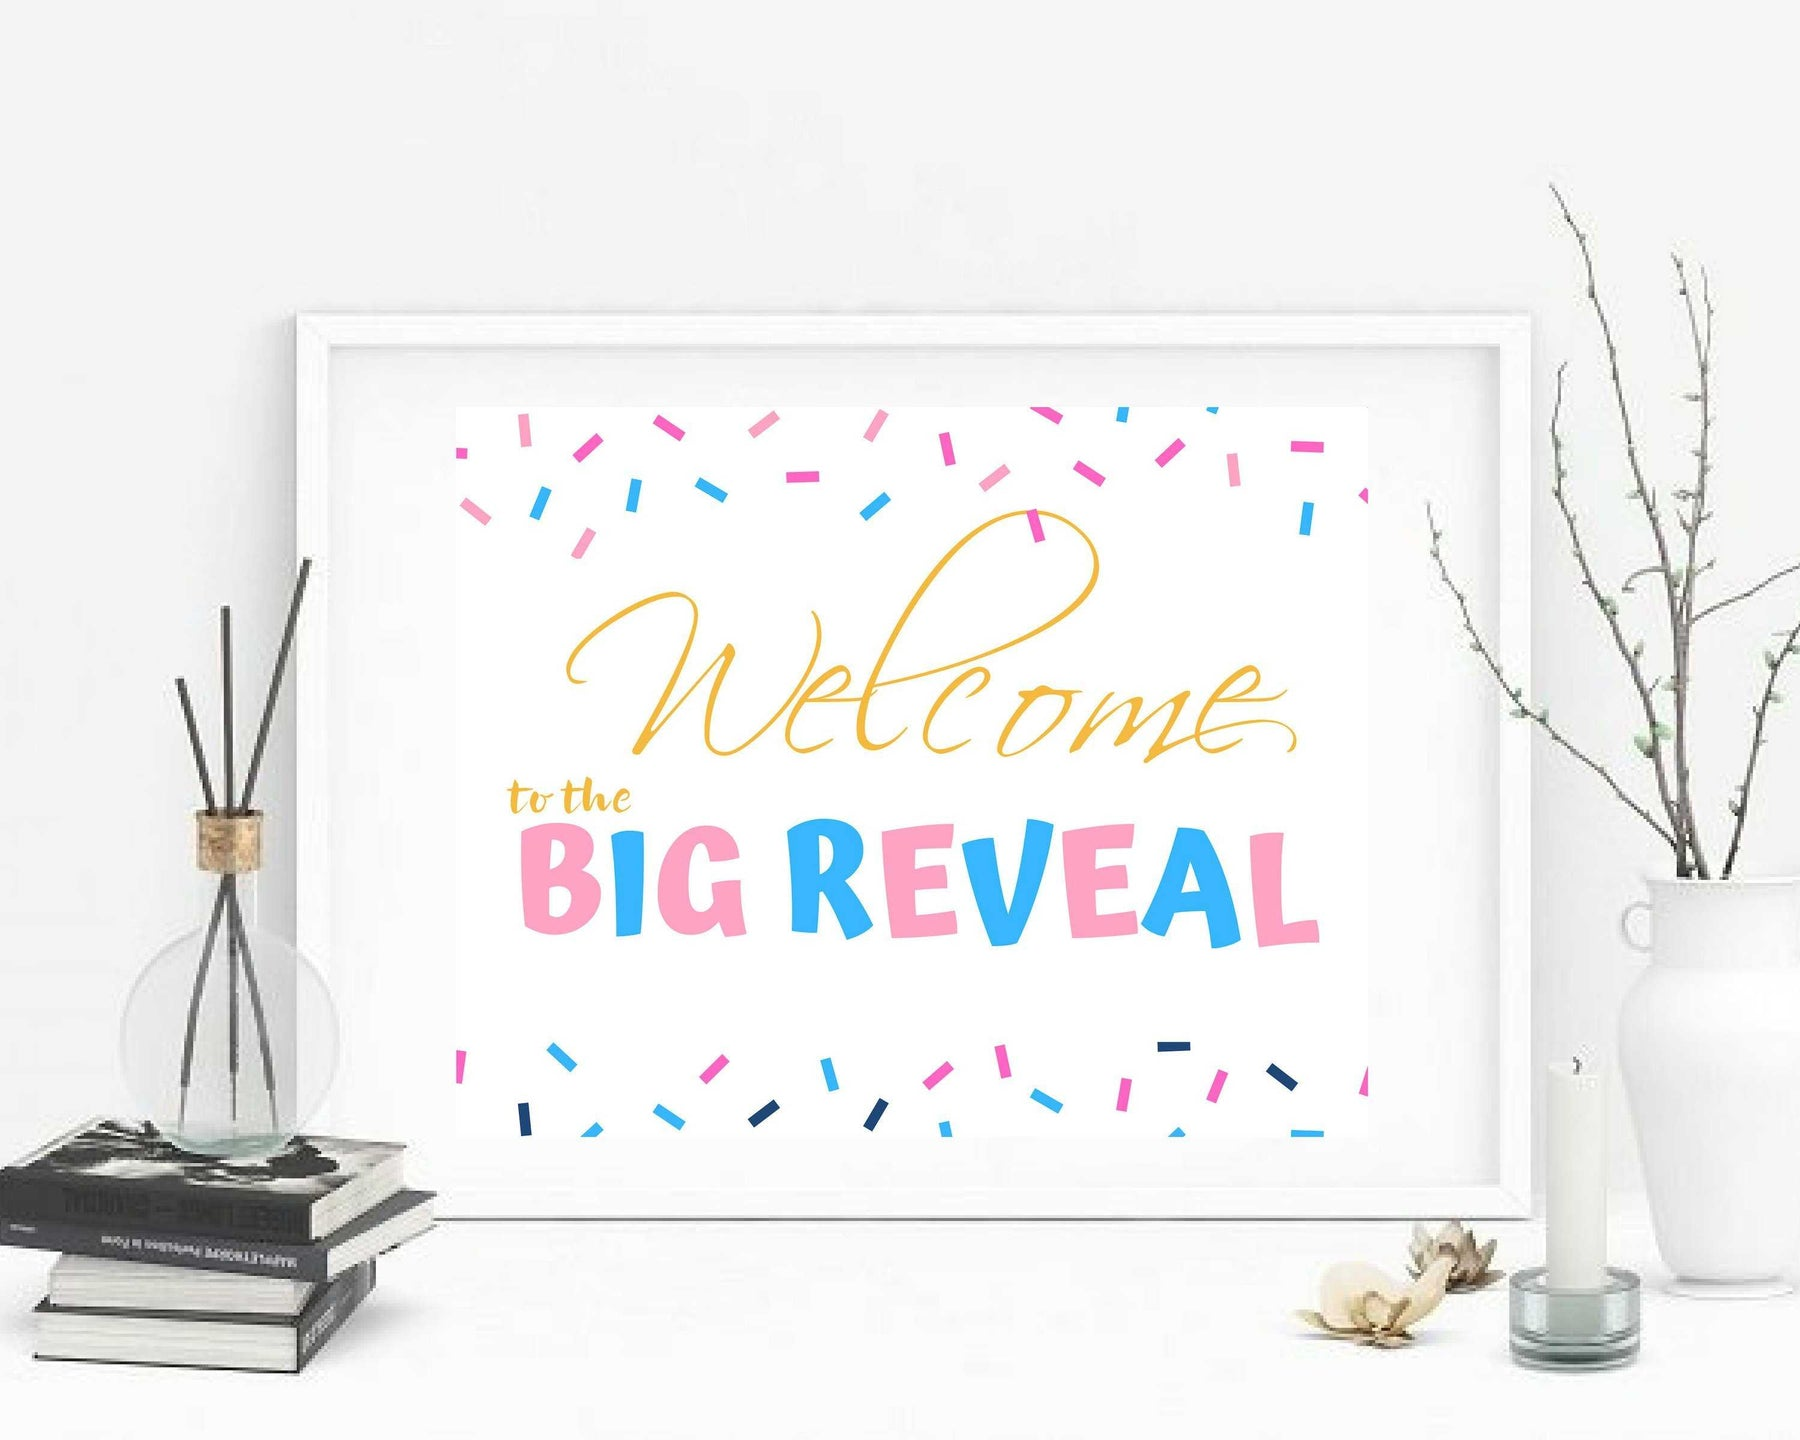 Gender Reveal Decorations welcome to the Big Reveal Sign personalized wall art decor